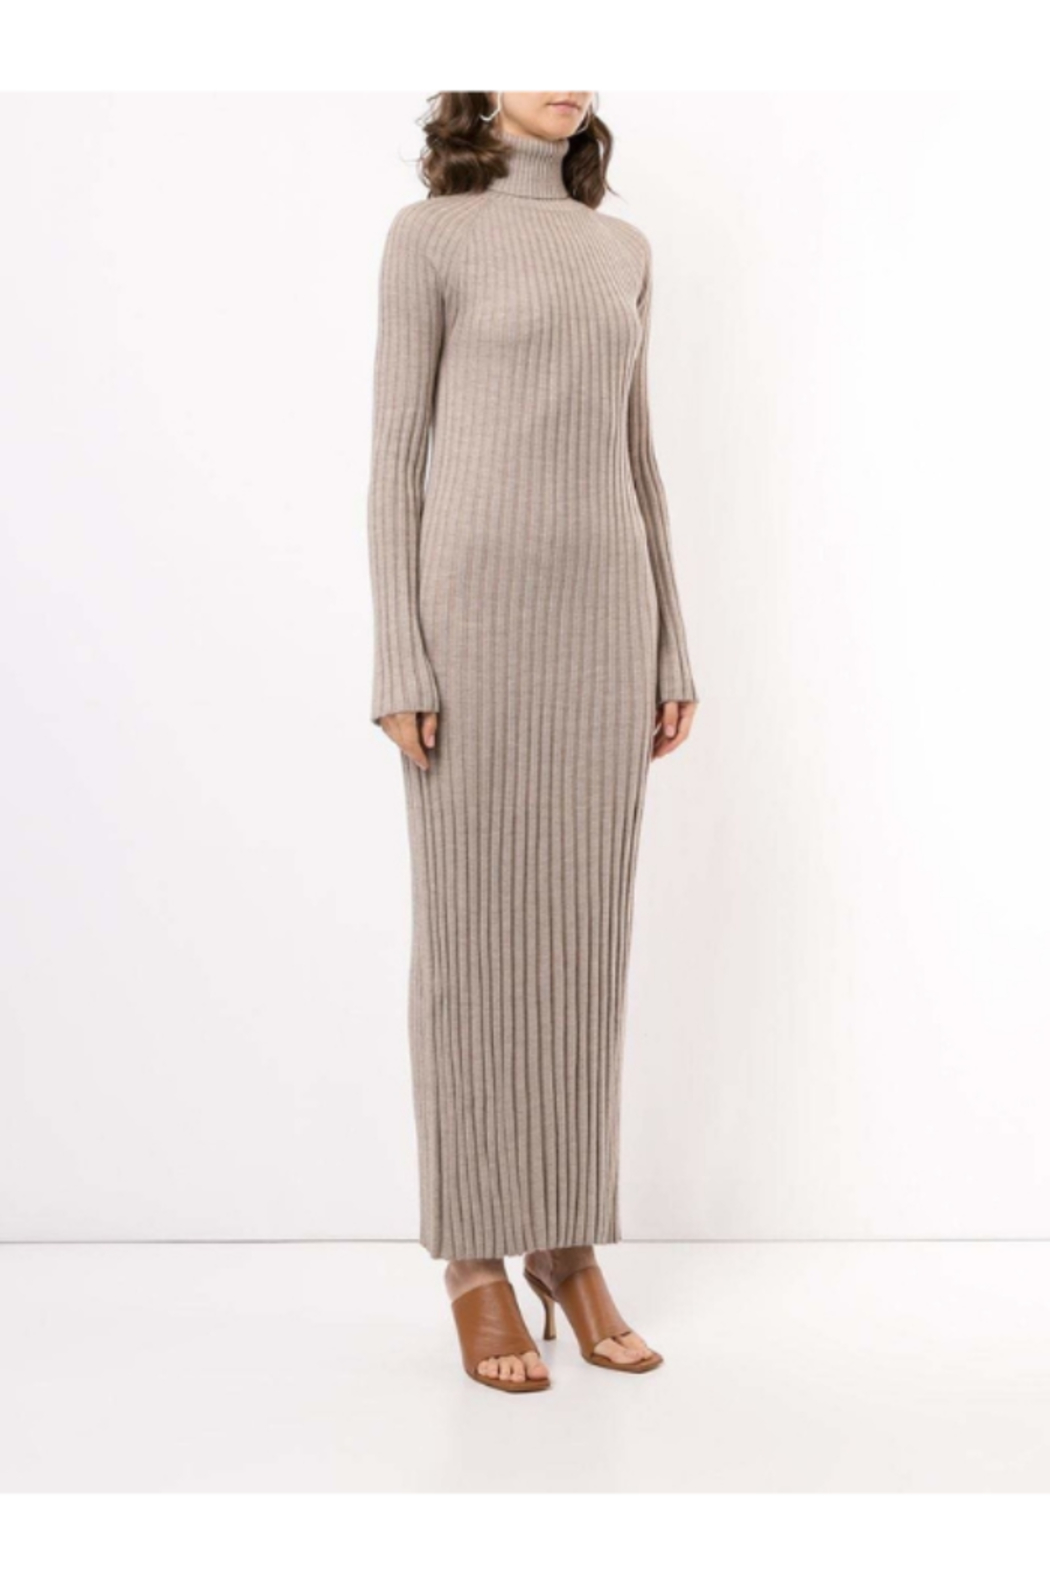 LouLou Studio Long Sleeve Maxi Pleated Knit Dress - Front Full Image